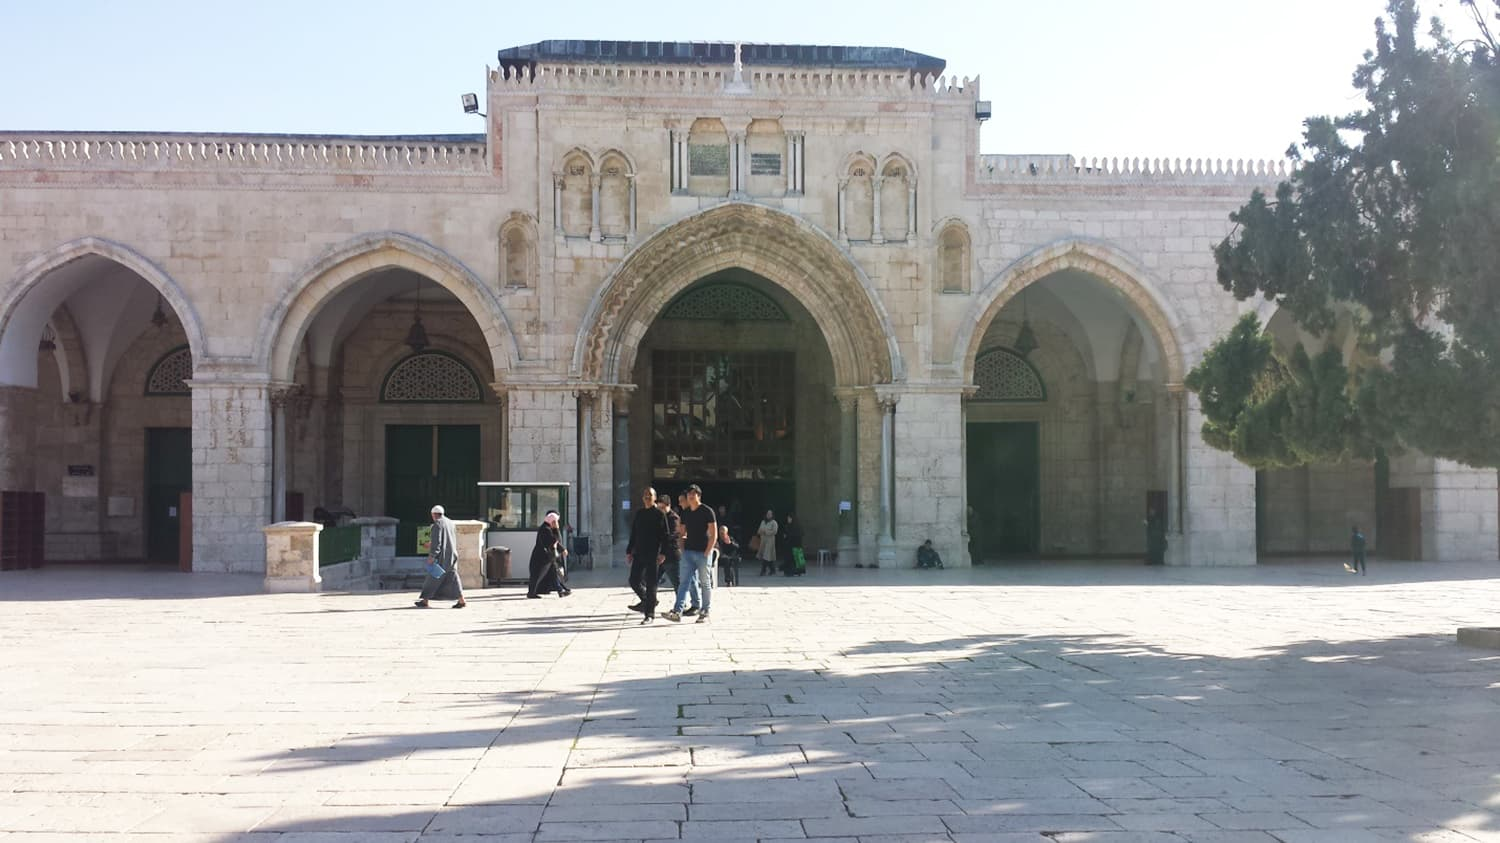 The entrance of Al-Aqsa mosque.